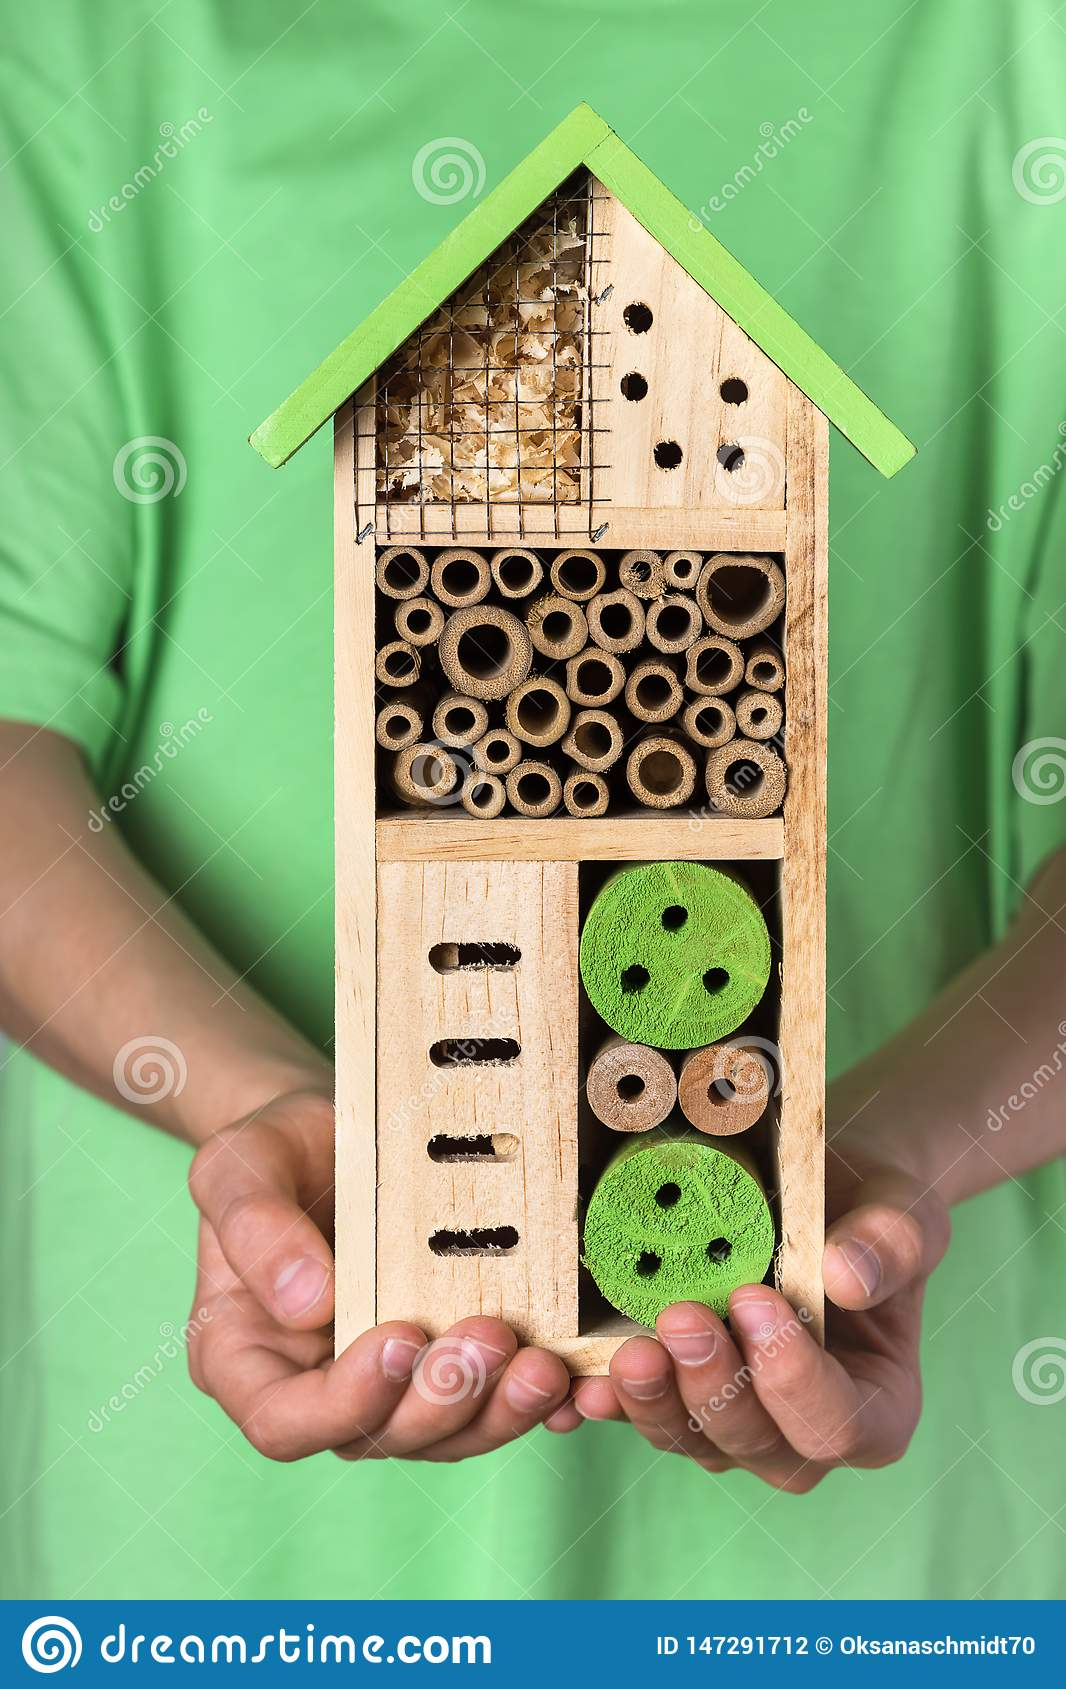 Young boy holding decorative wooden bee for different child of insects.